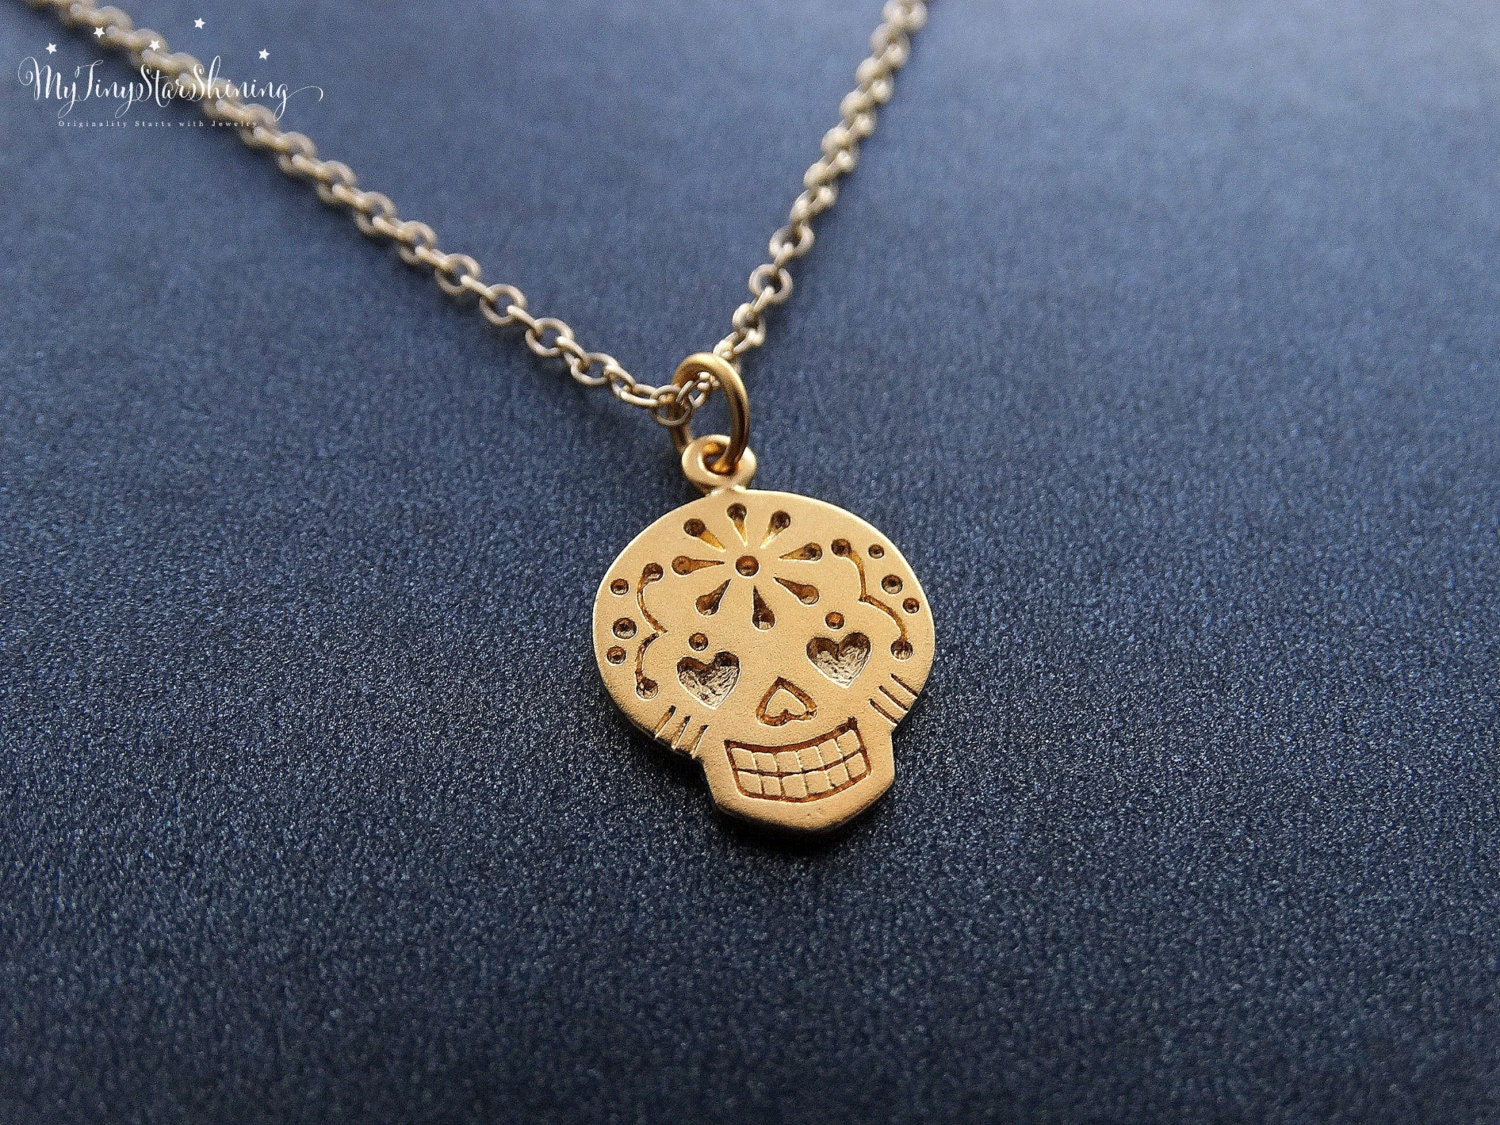 cool pendant your jewelry large to something sugar of give pin dead skull wear day neck the